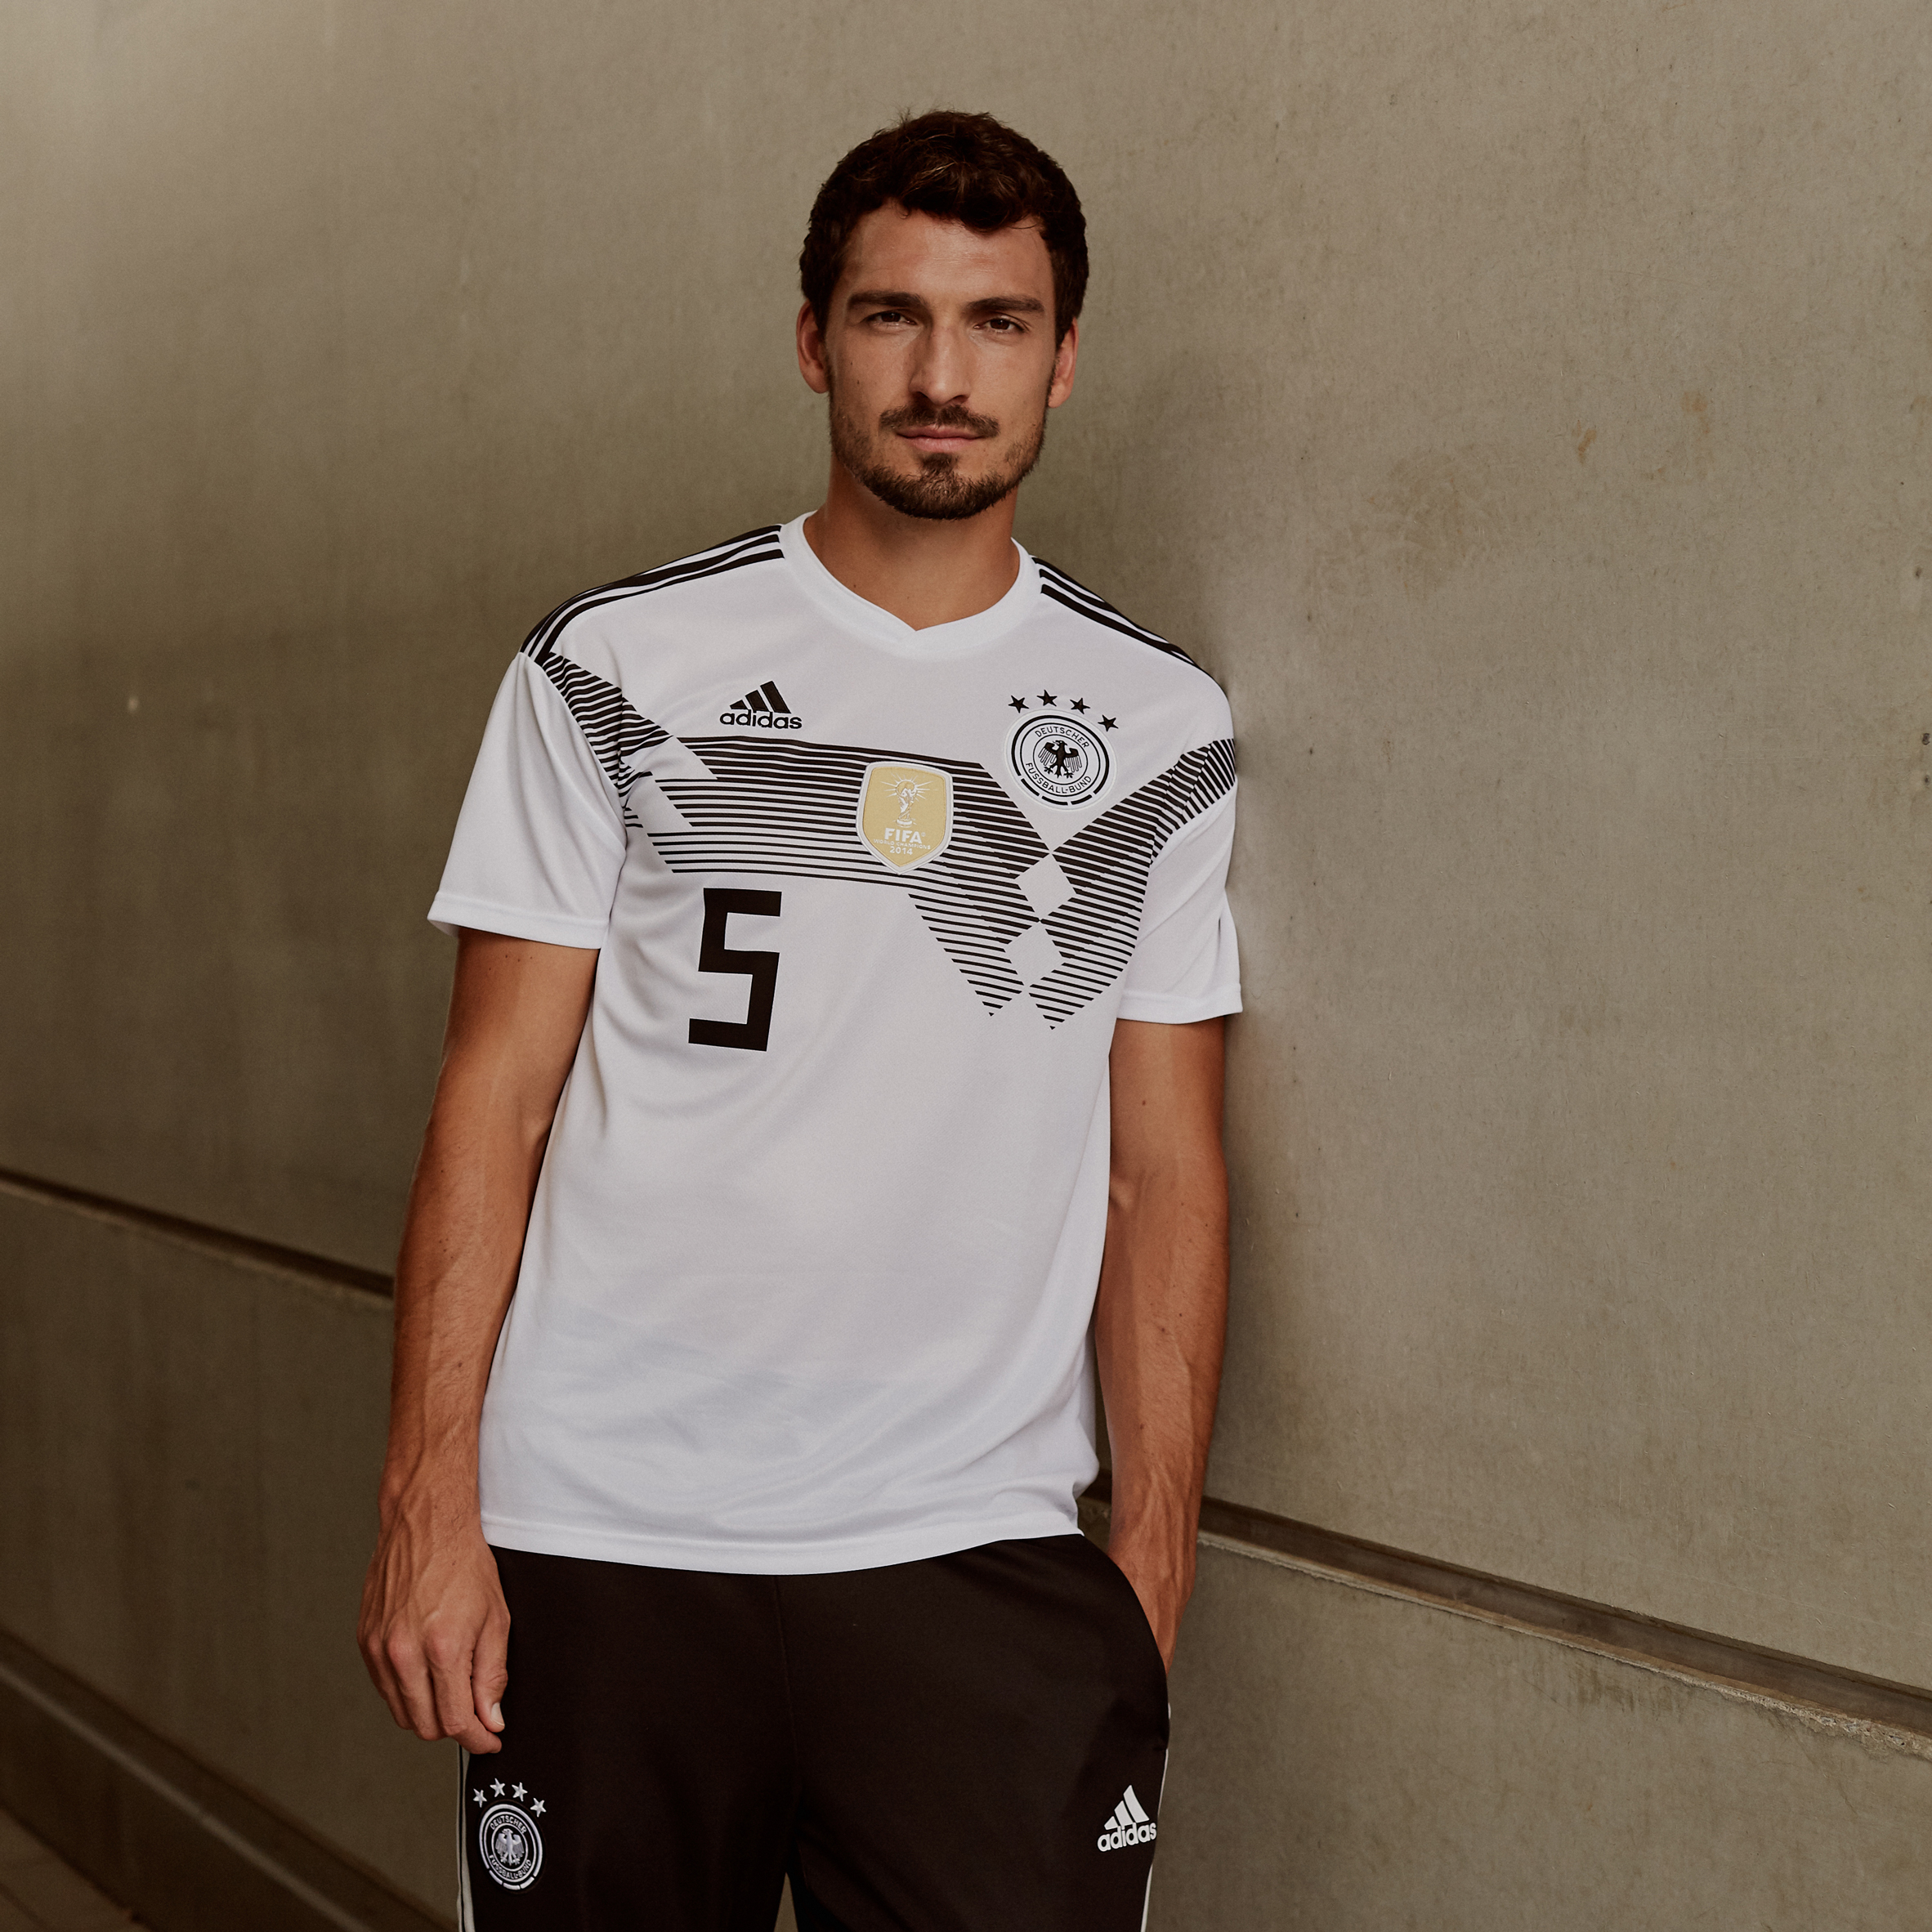 Adidas unveils World Cup kits that pay homage to classic football ...